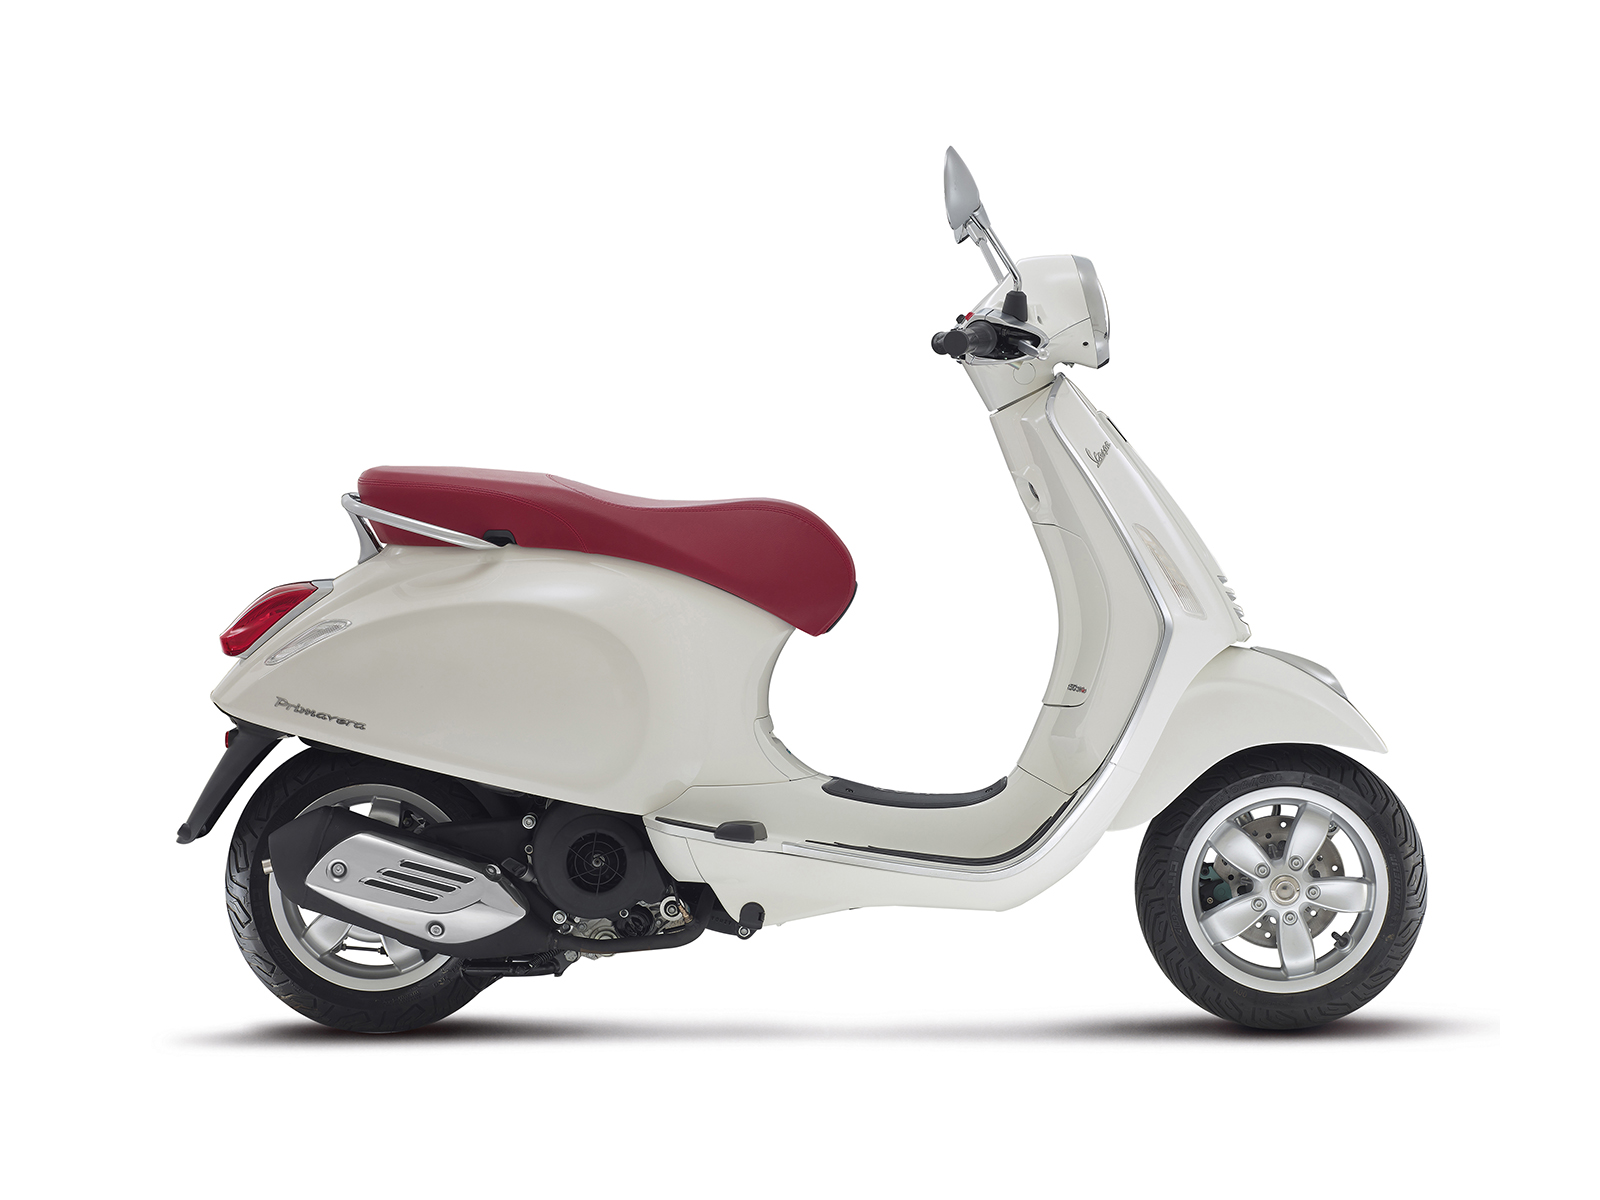 scooter piaggio d 39 occasion vendre marseille avec king moto moto scooter motos d 39 occasion. Black Bedroom Furniture Sets. Home Design Ideas